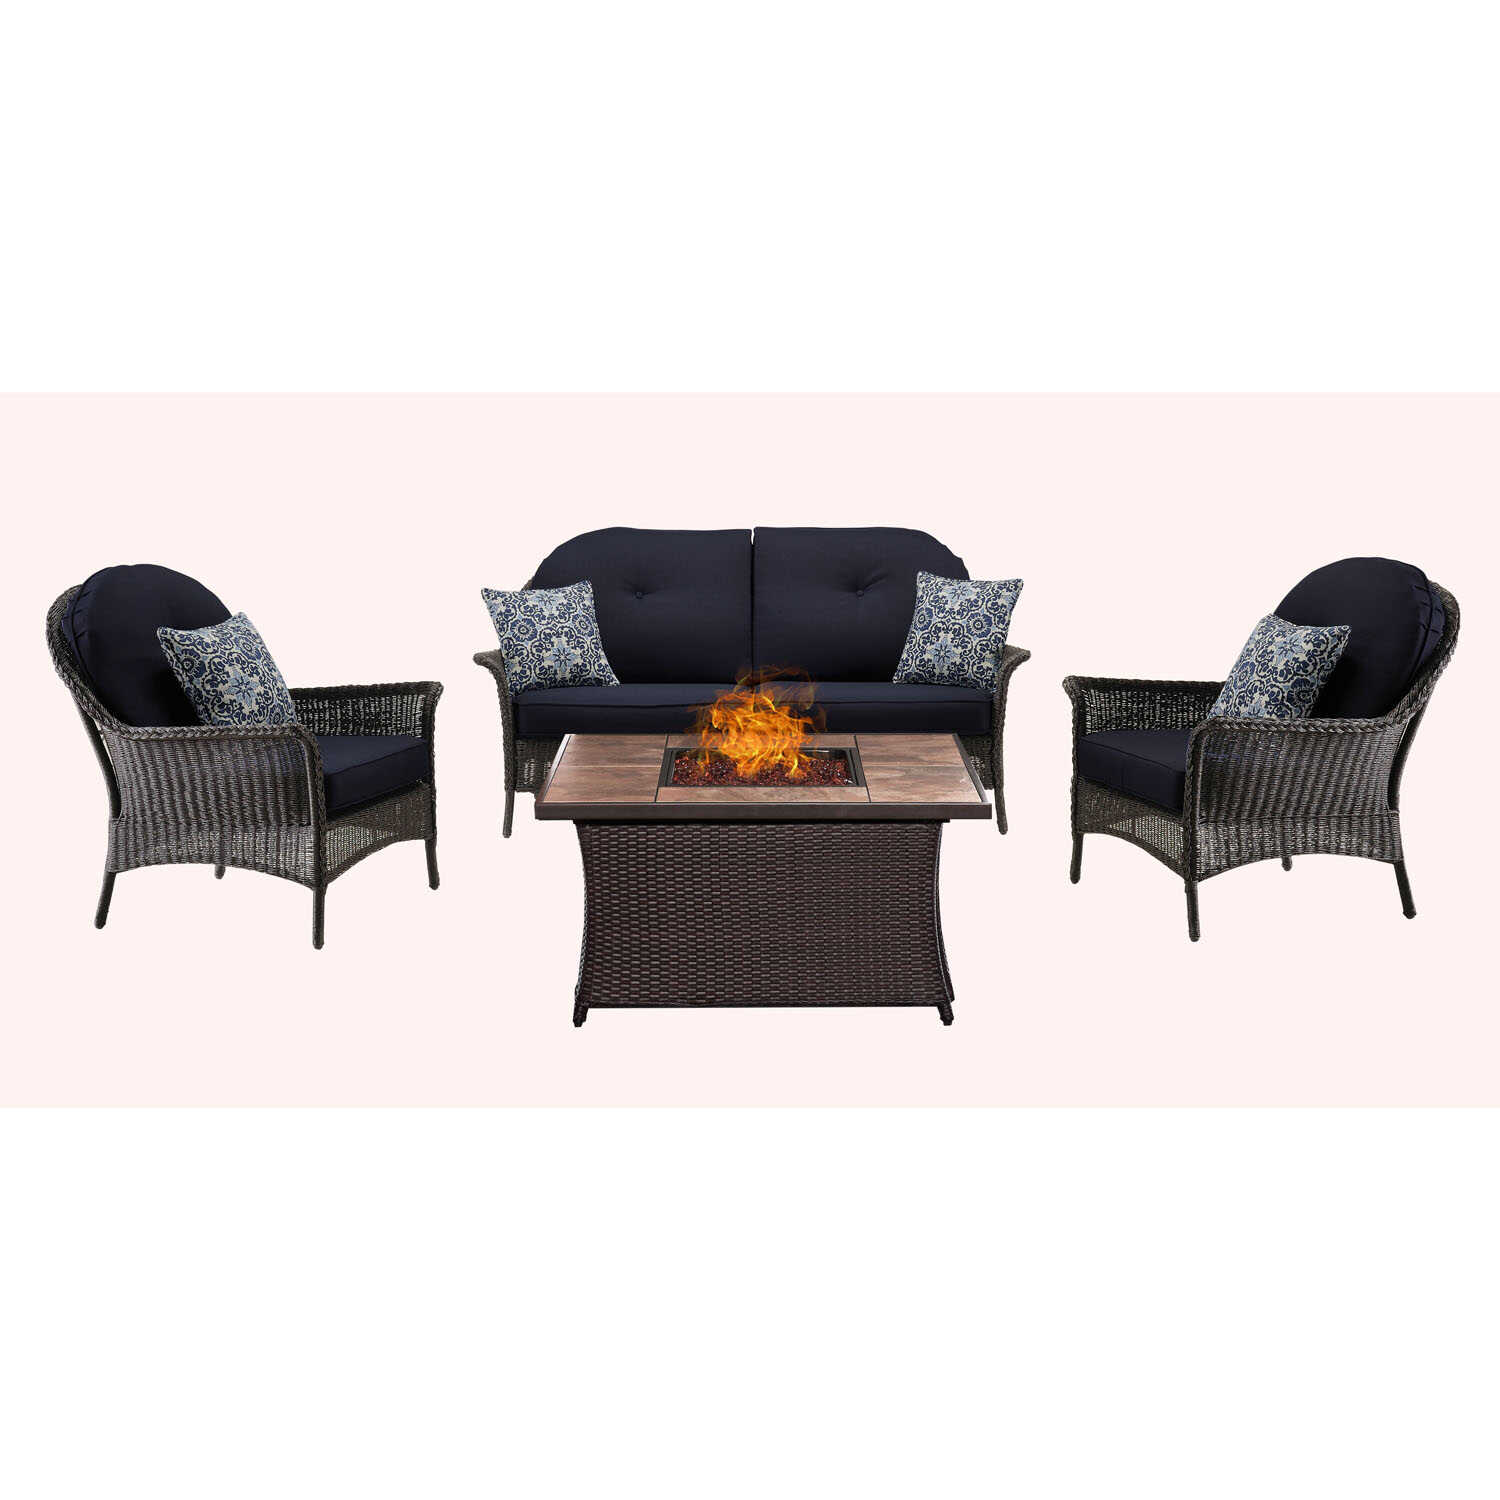 Hanover  San Marino  4 pc. Java  Steel  Chat  Firepit Set  Navy Blue